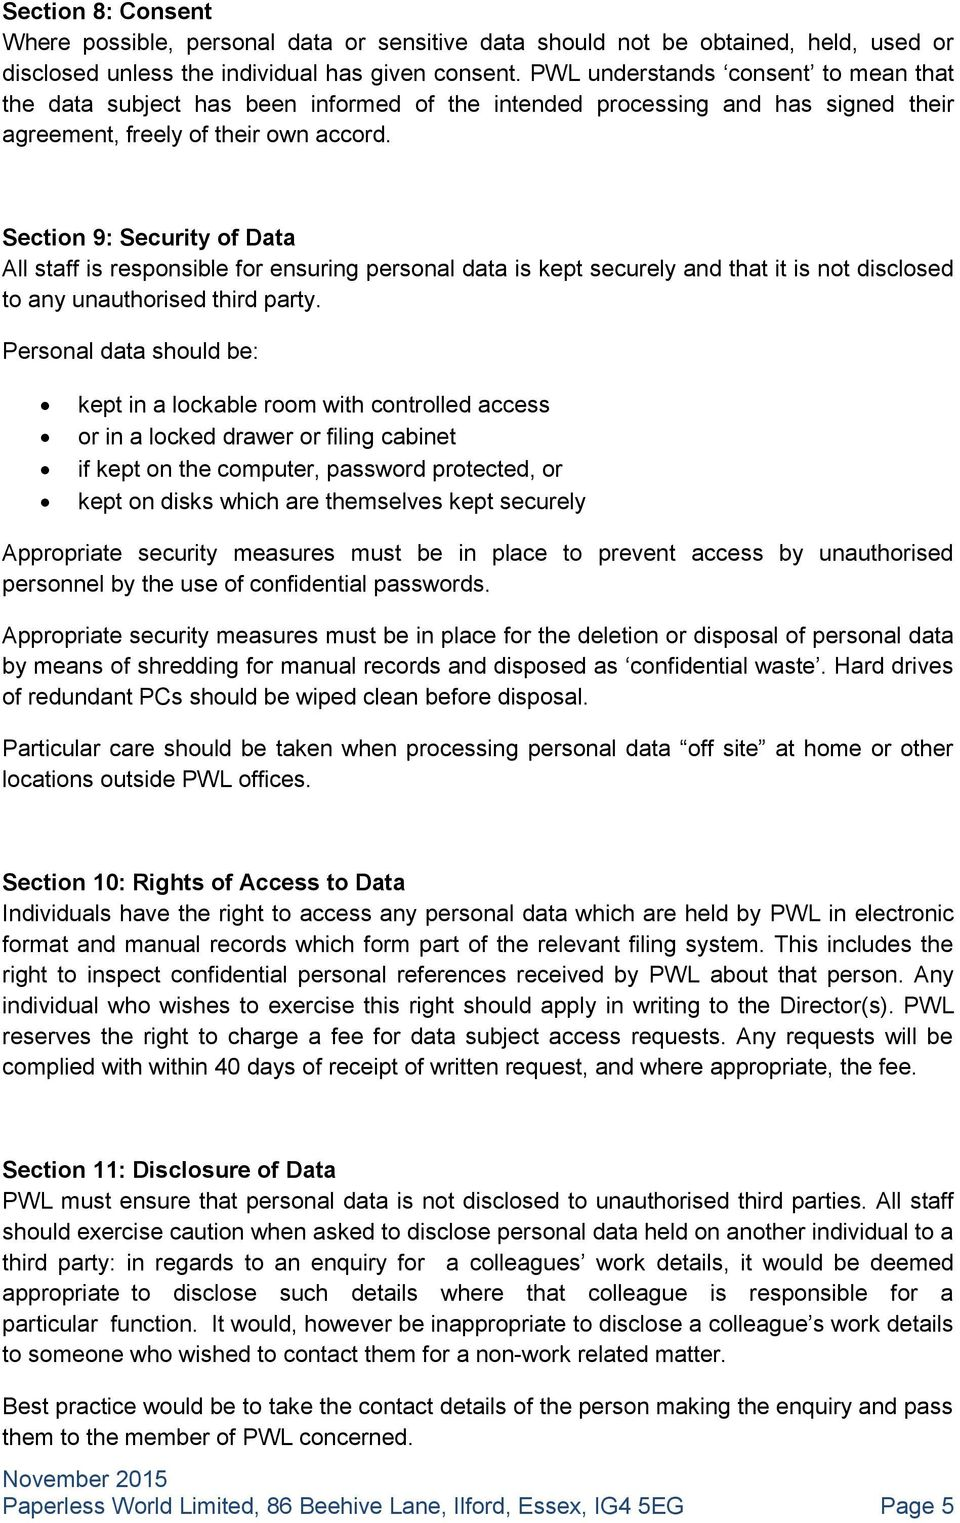 Section 9: Security of Data All staff is responsible for ensuring personal data is kept securely and that it is not disclosed to any unauthorised third party.